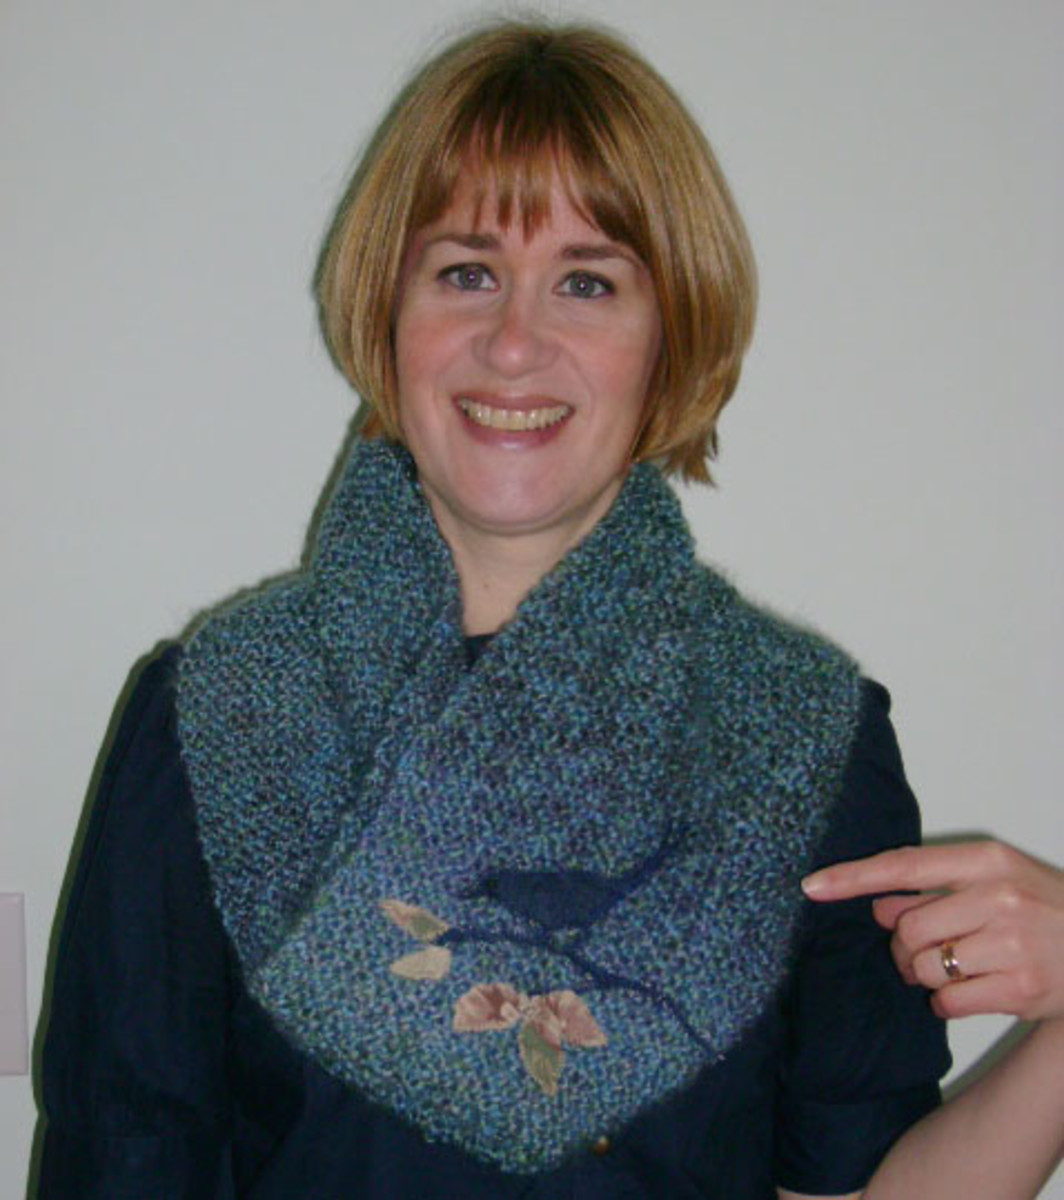 The Most Important Lessons Learned from My First Knitting Project